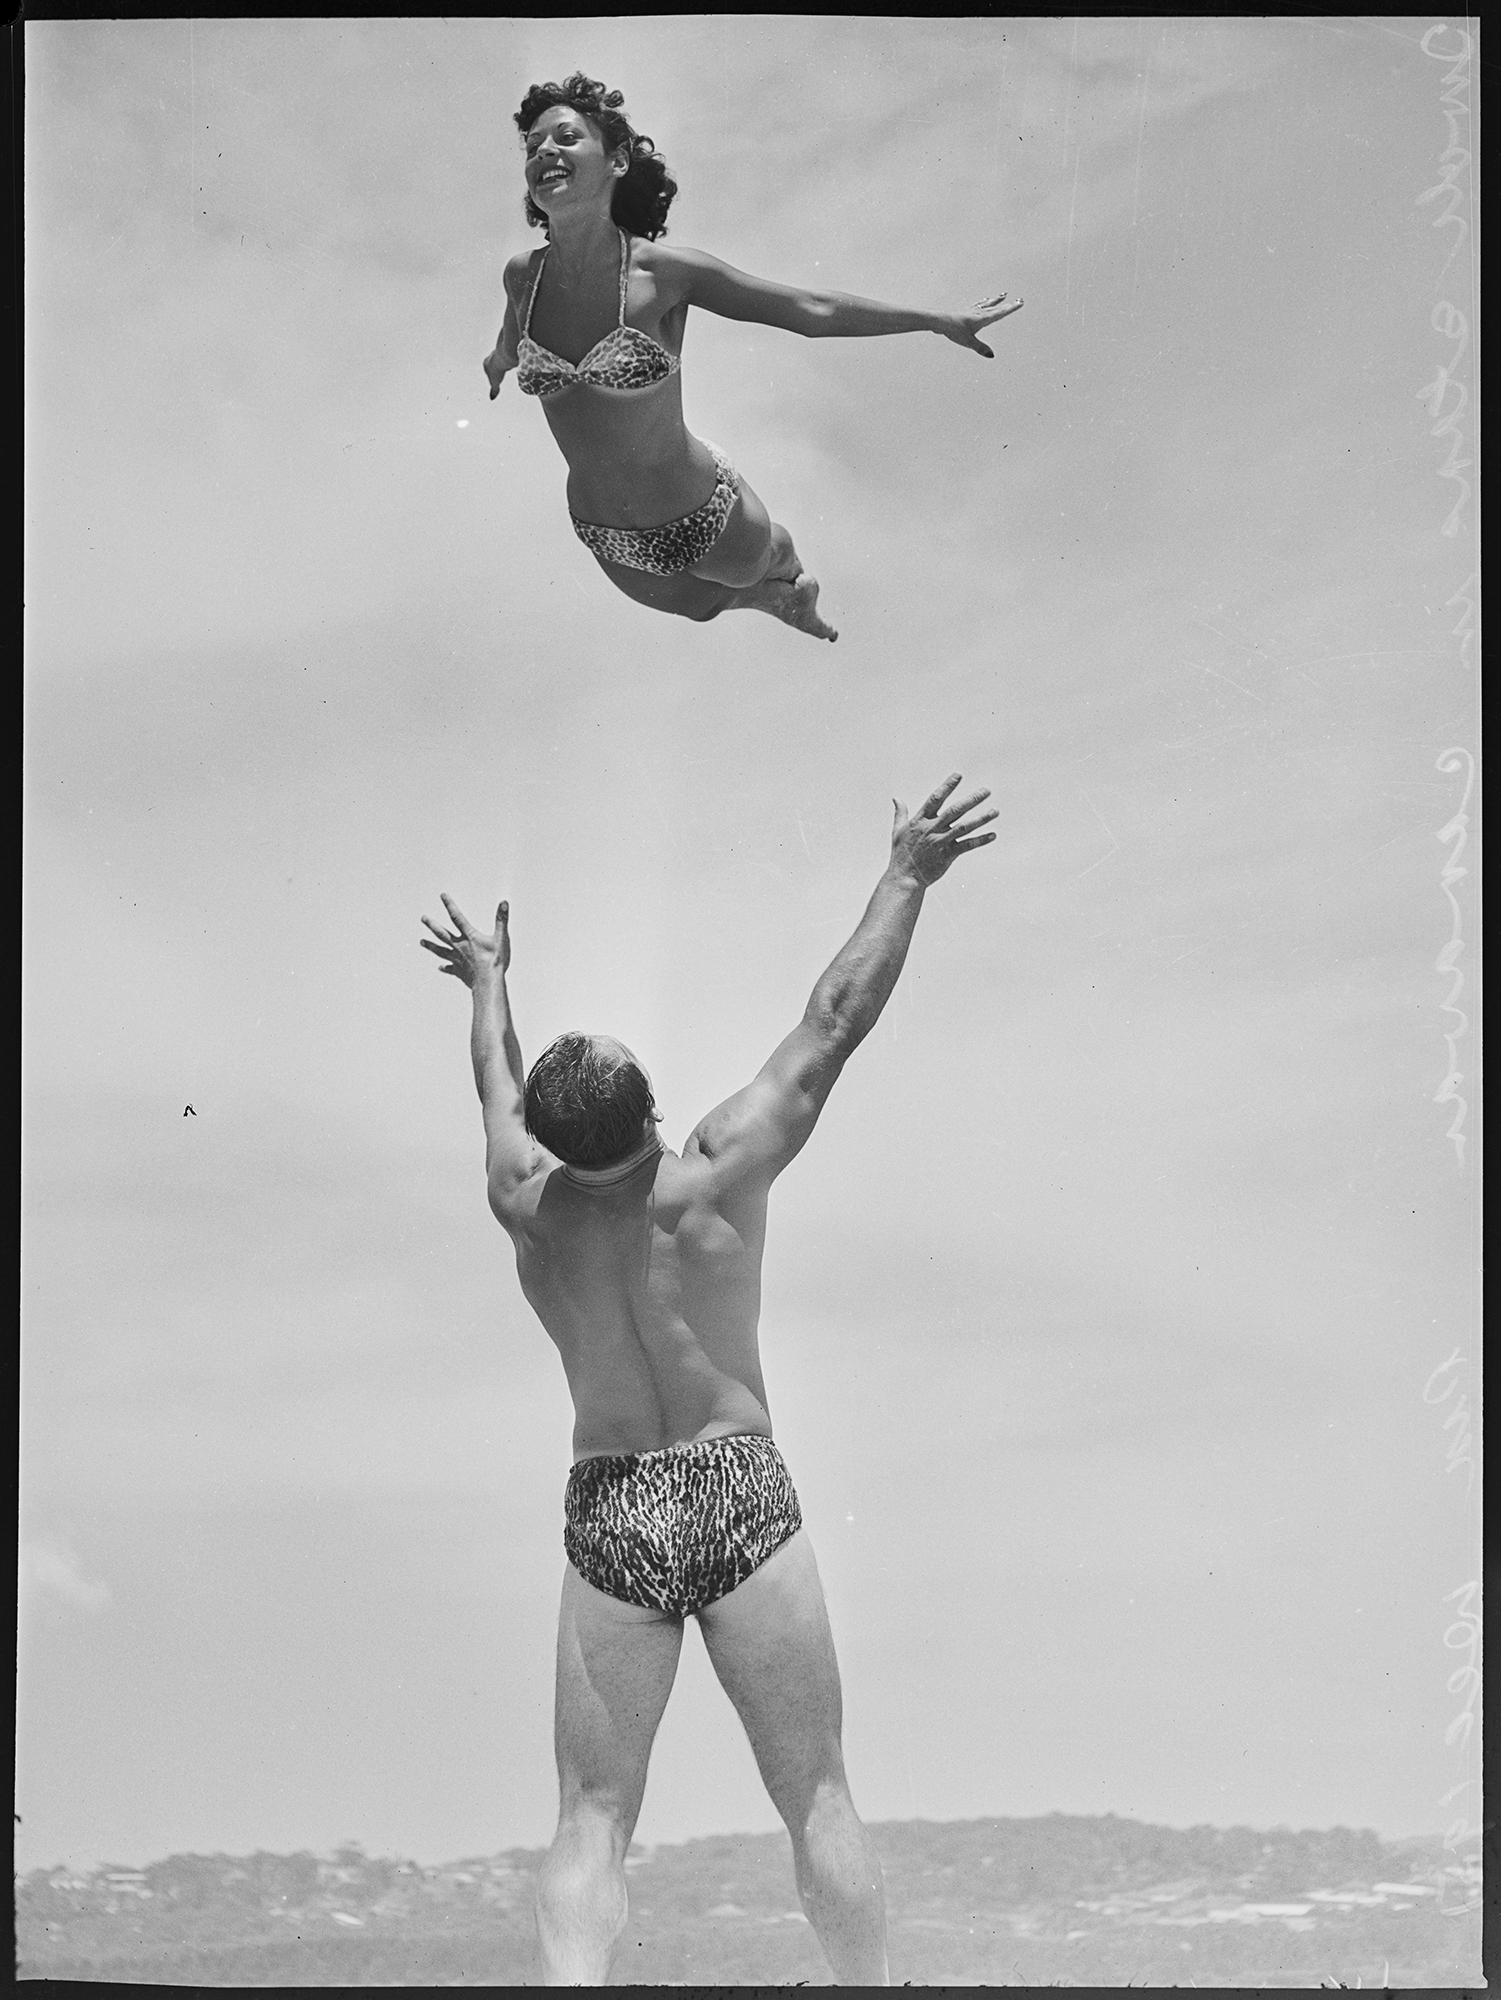 Acrobatics at the beach by two Tivoli stars, December 1951